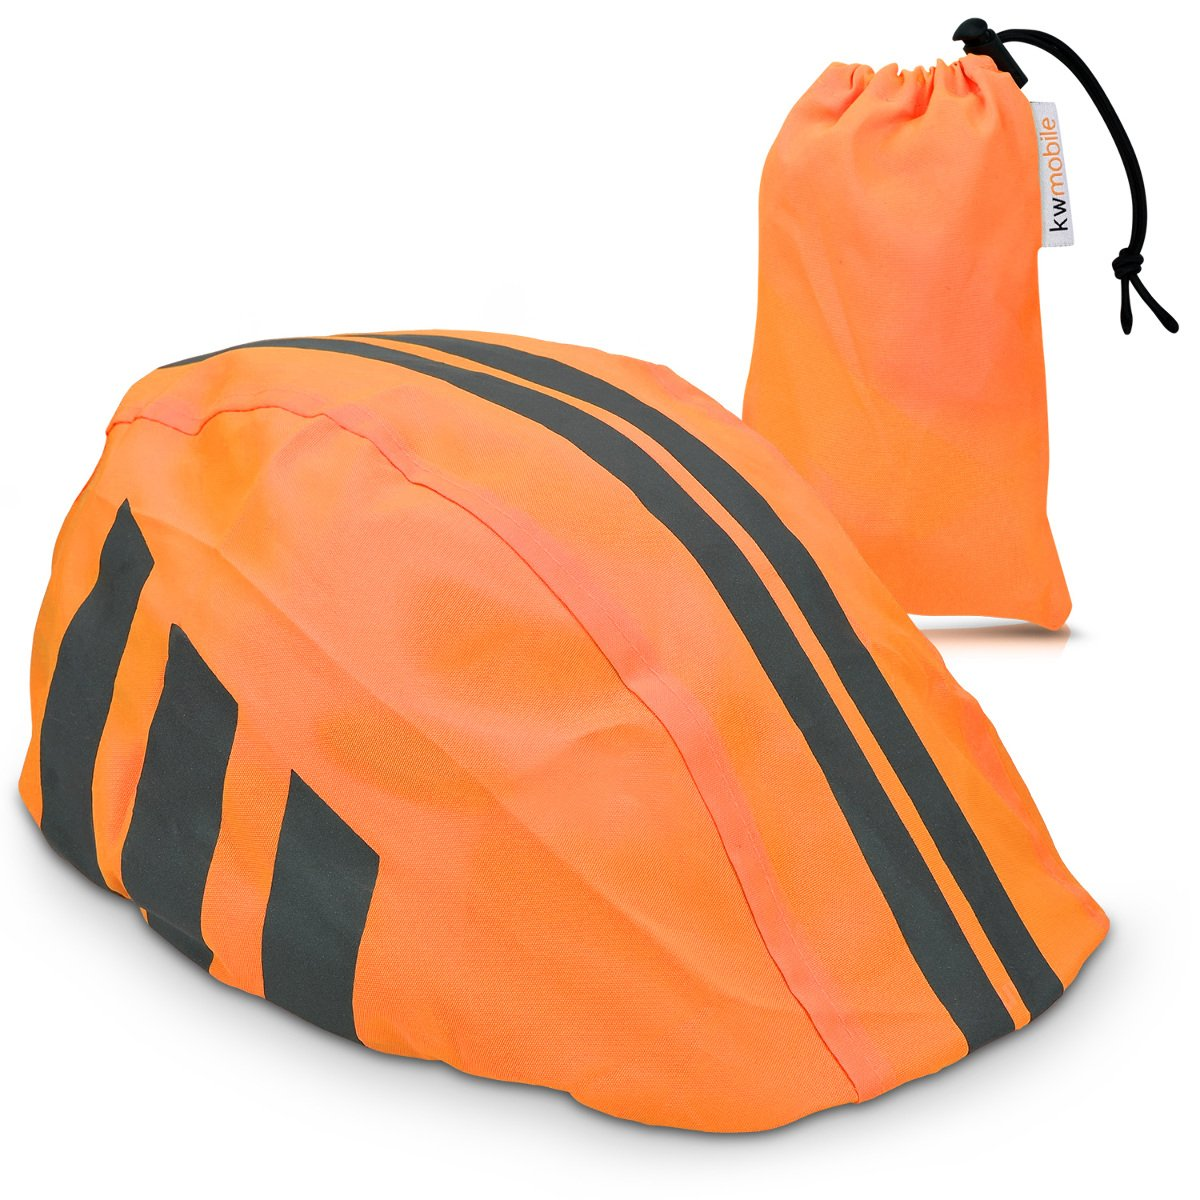 kwmobile Rain Protector Helmet Cover - Waterproof Helmet Protection Bike Helmet - Unisex High Visibility Rain Cover Cycling Riding Biking KW-Commerce 42047_m000579